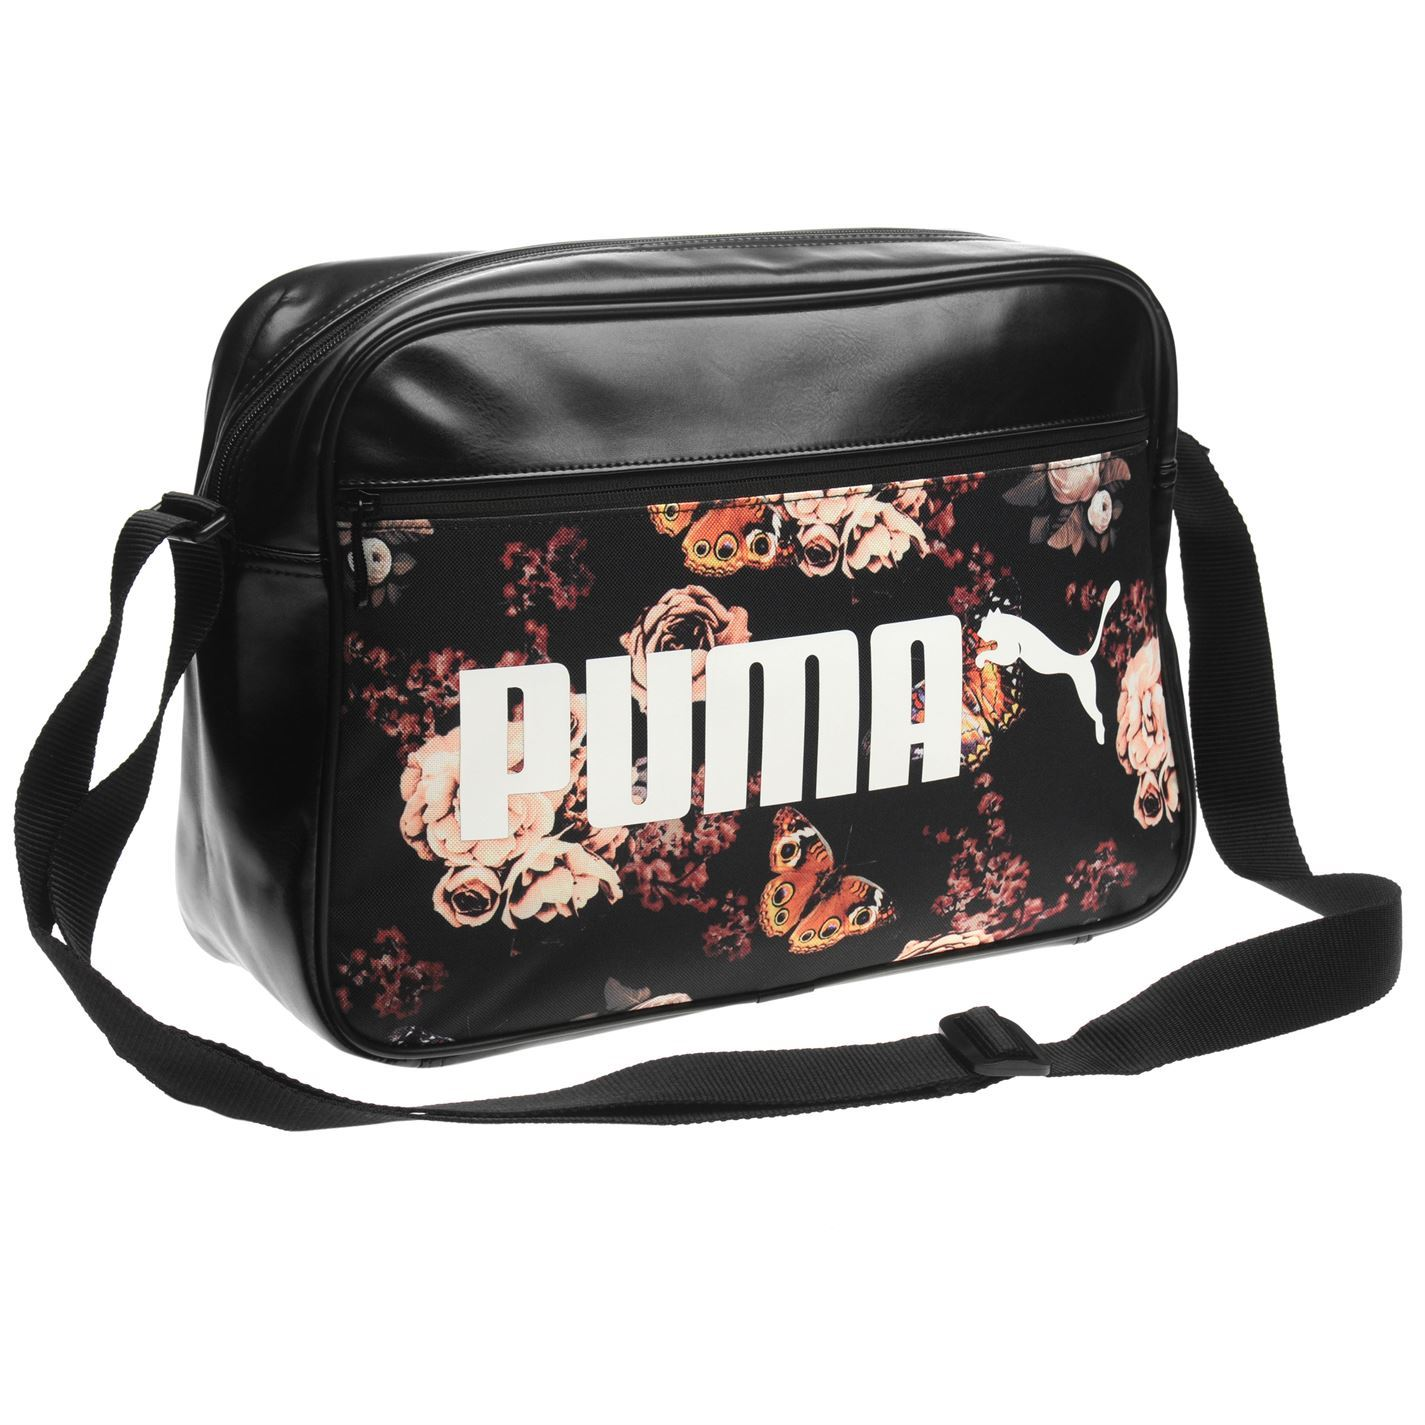 e75c67c70d1 ... Puma Flower Campus Reporter Bag Black Messenger Flight Bag Holdall ...